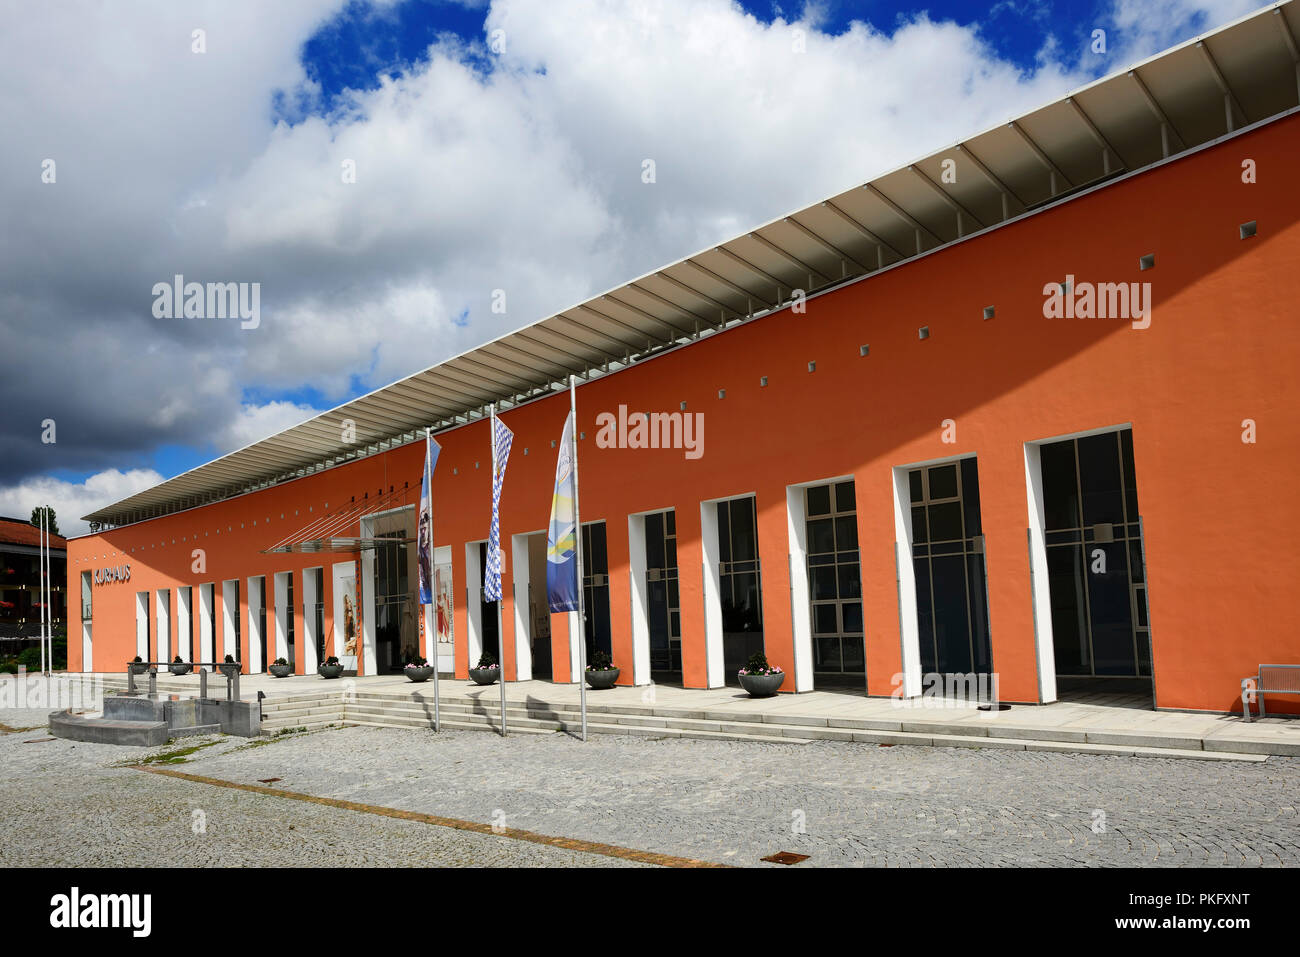 Bäder Niederbayern Therme Germany Stockfotos Therme Germany Bilder Alamy